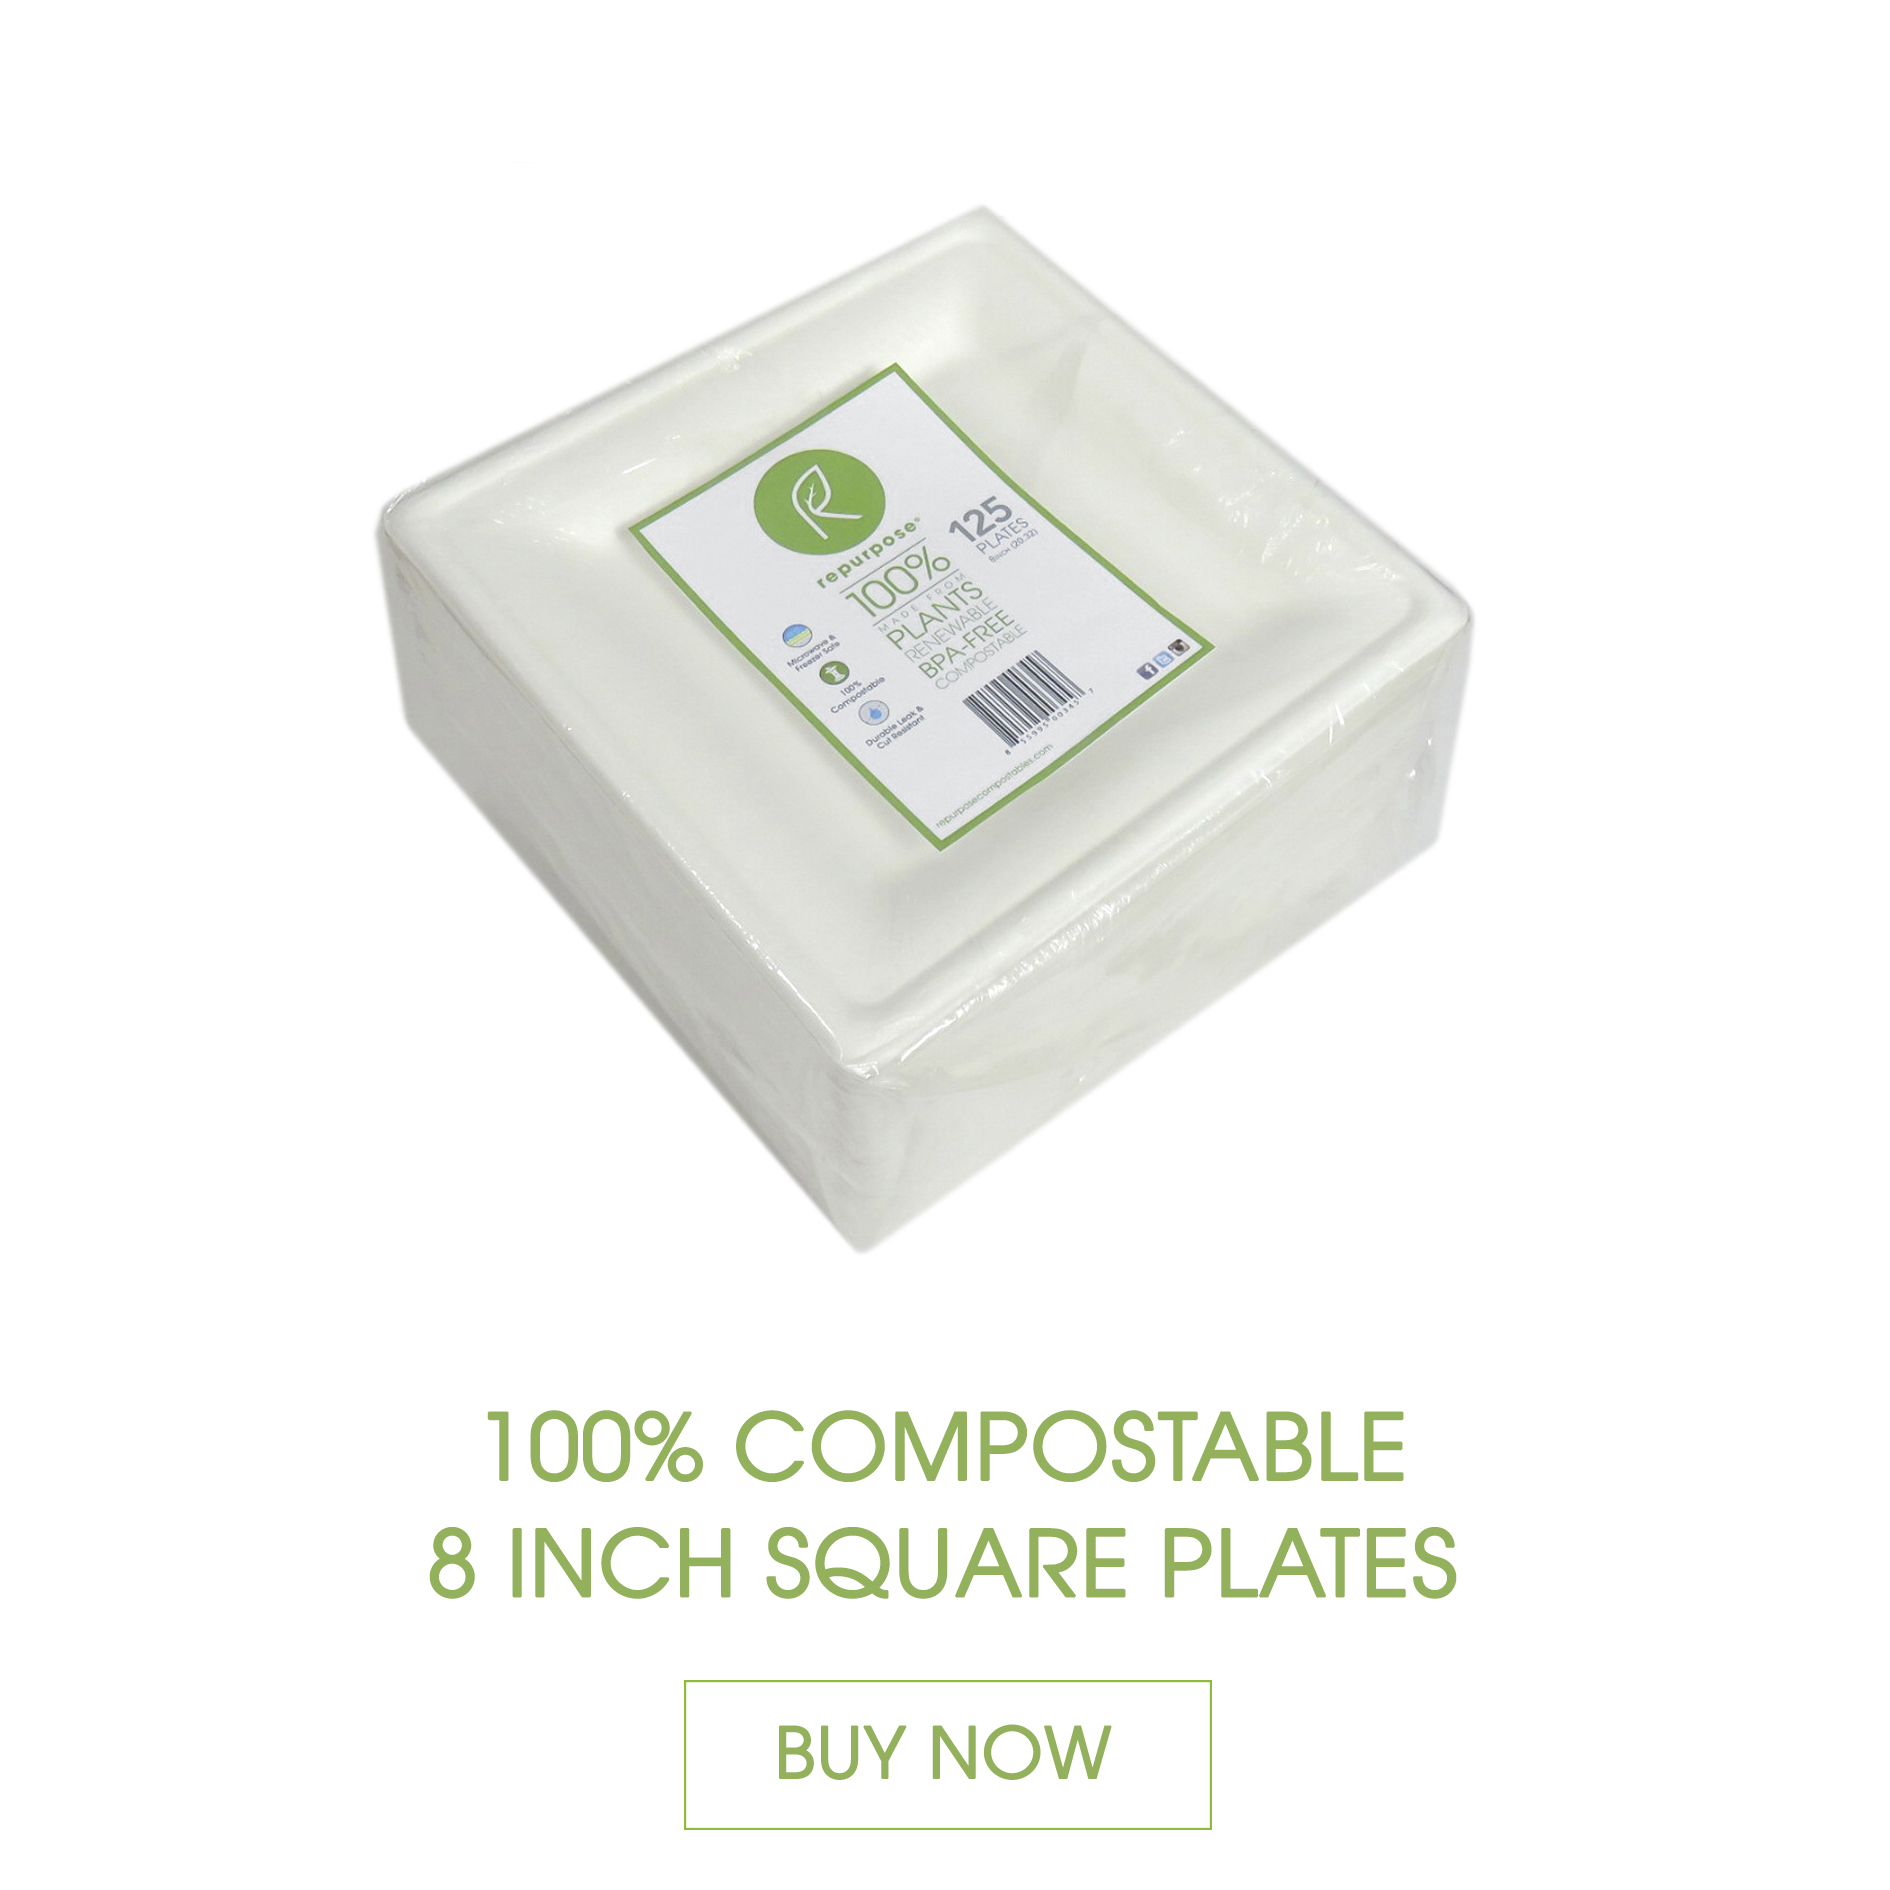 Repurpose Square Plates are made 100% from plants, renewable and compostable. They are heavy duty with an elegant look and feel.